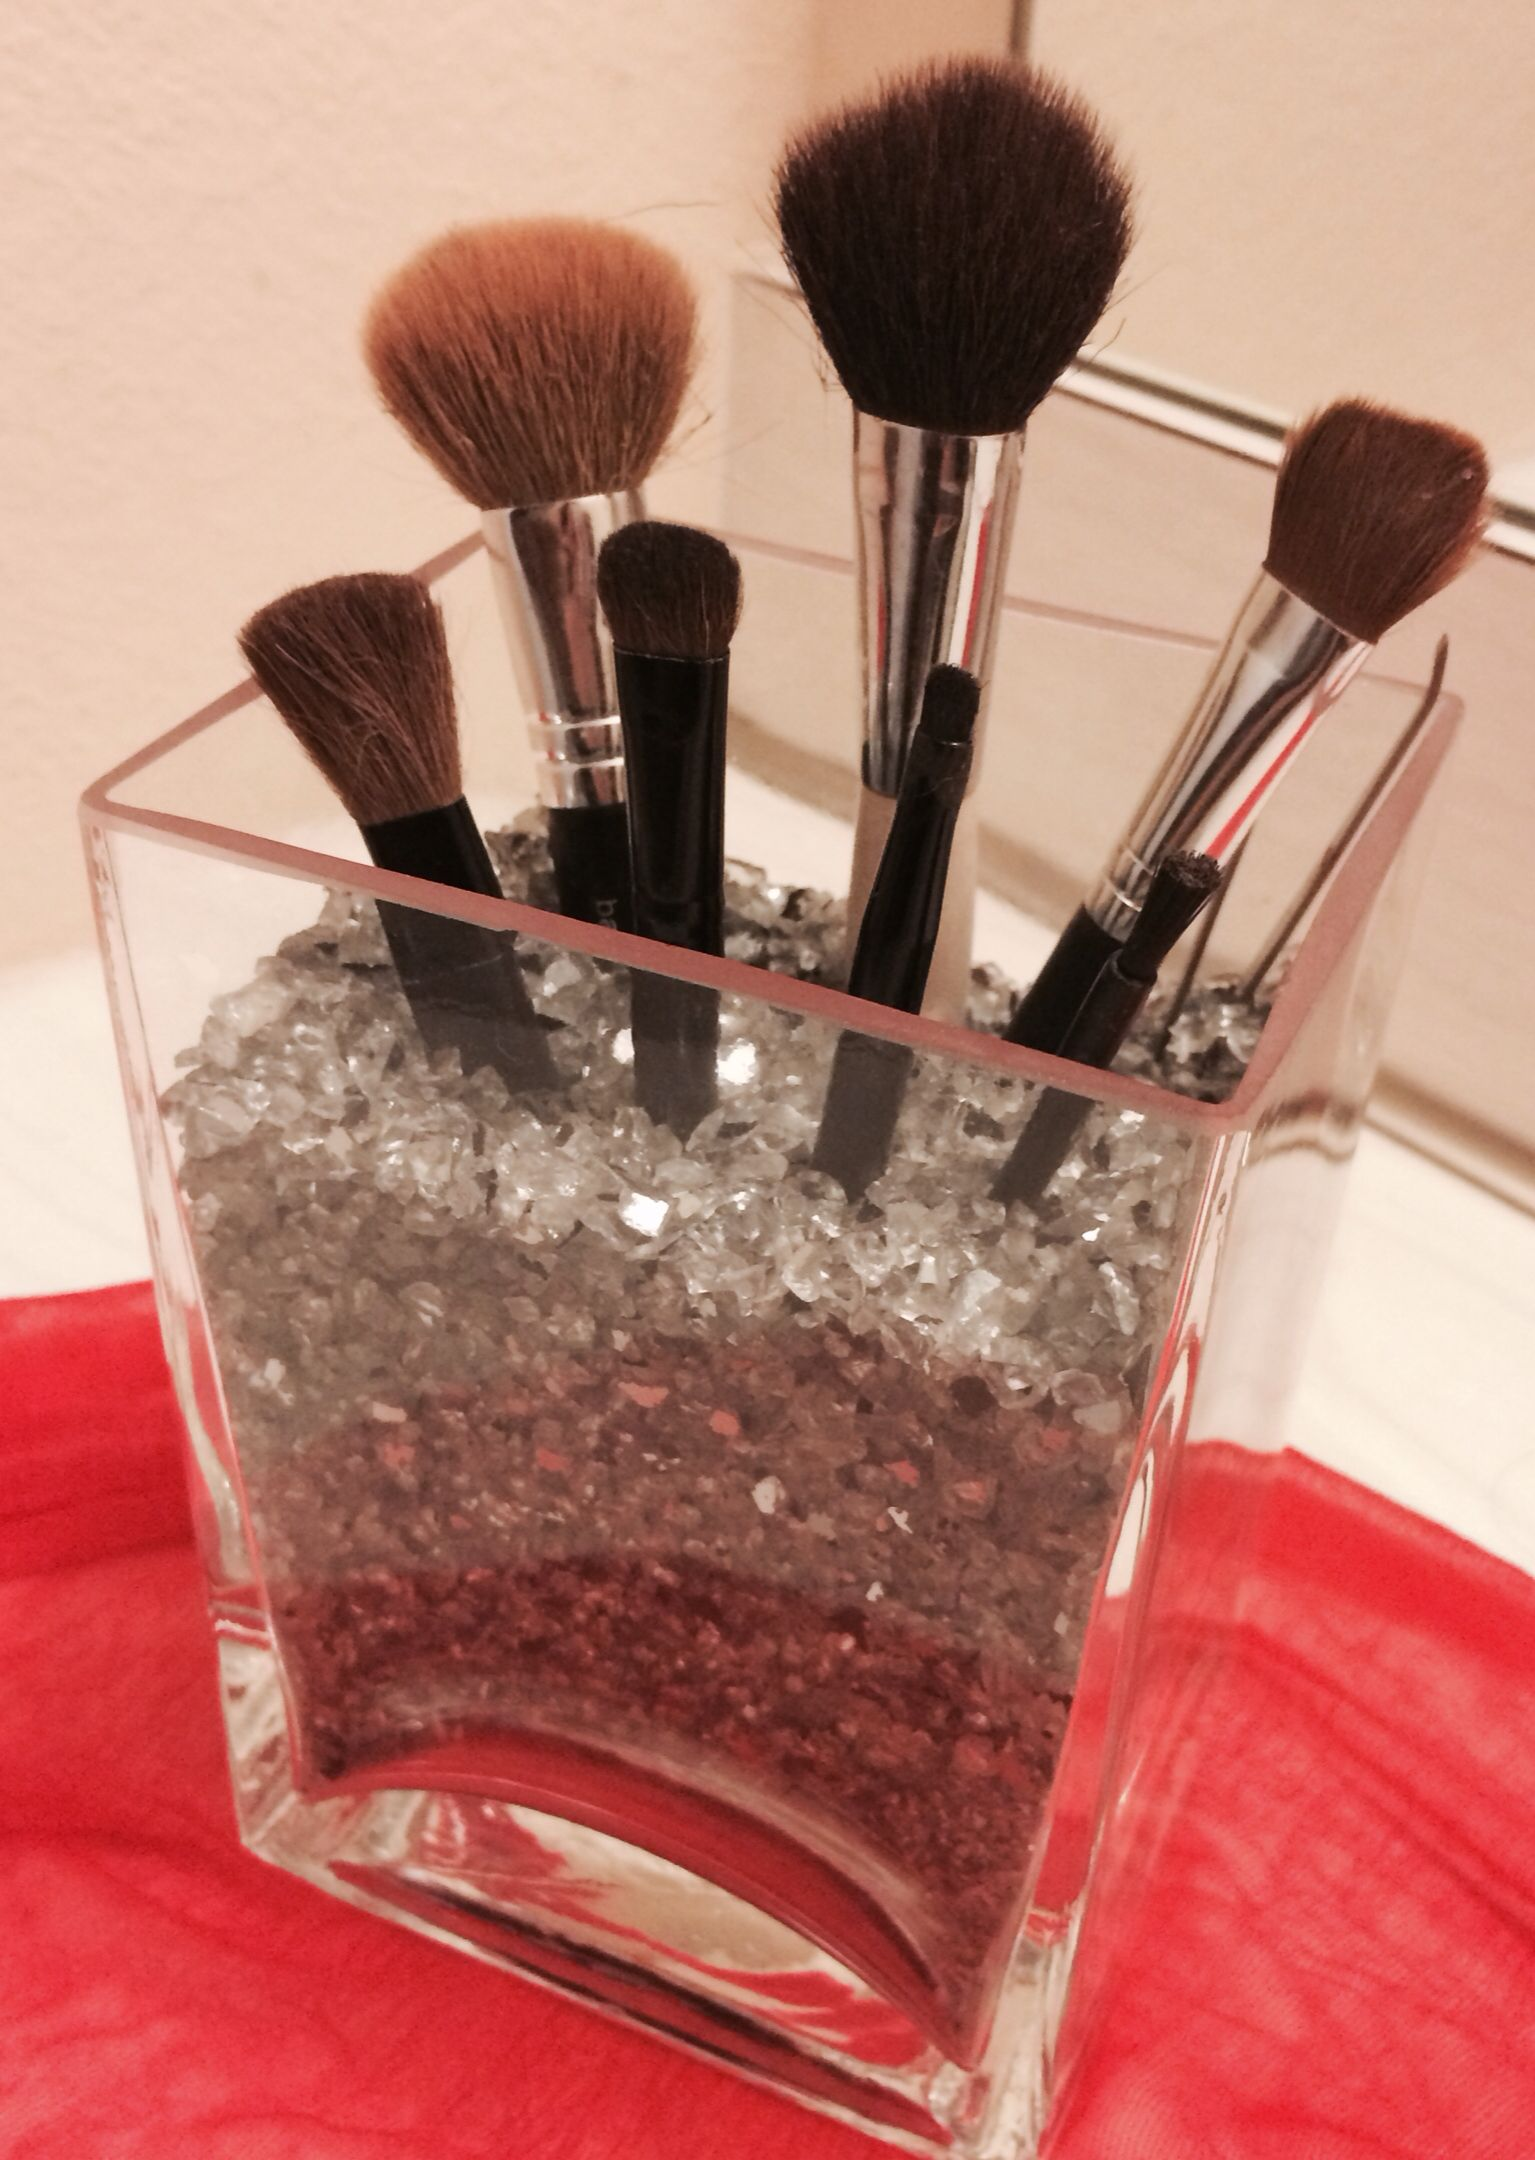 Diy make up brush holder ikea rektangel vase and kulort metallic ikea rektangel vase and kulort metallic chipped stones reviewsmspy